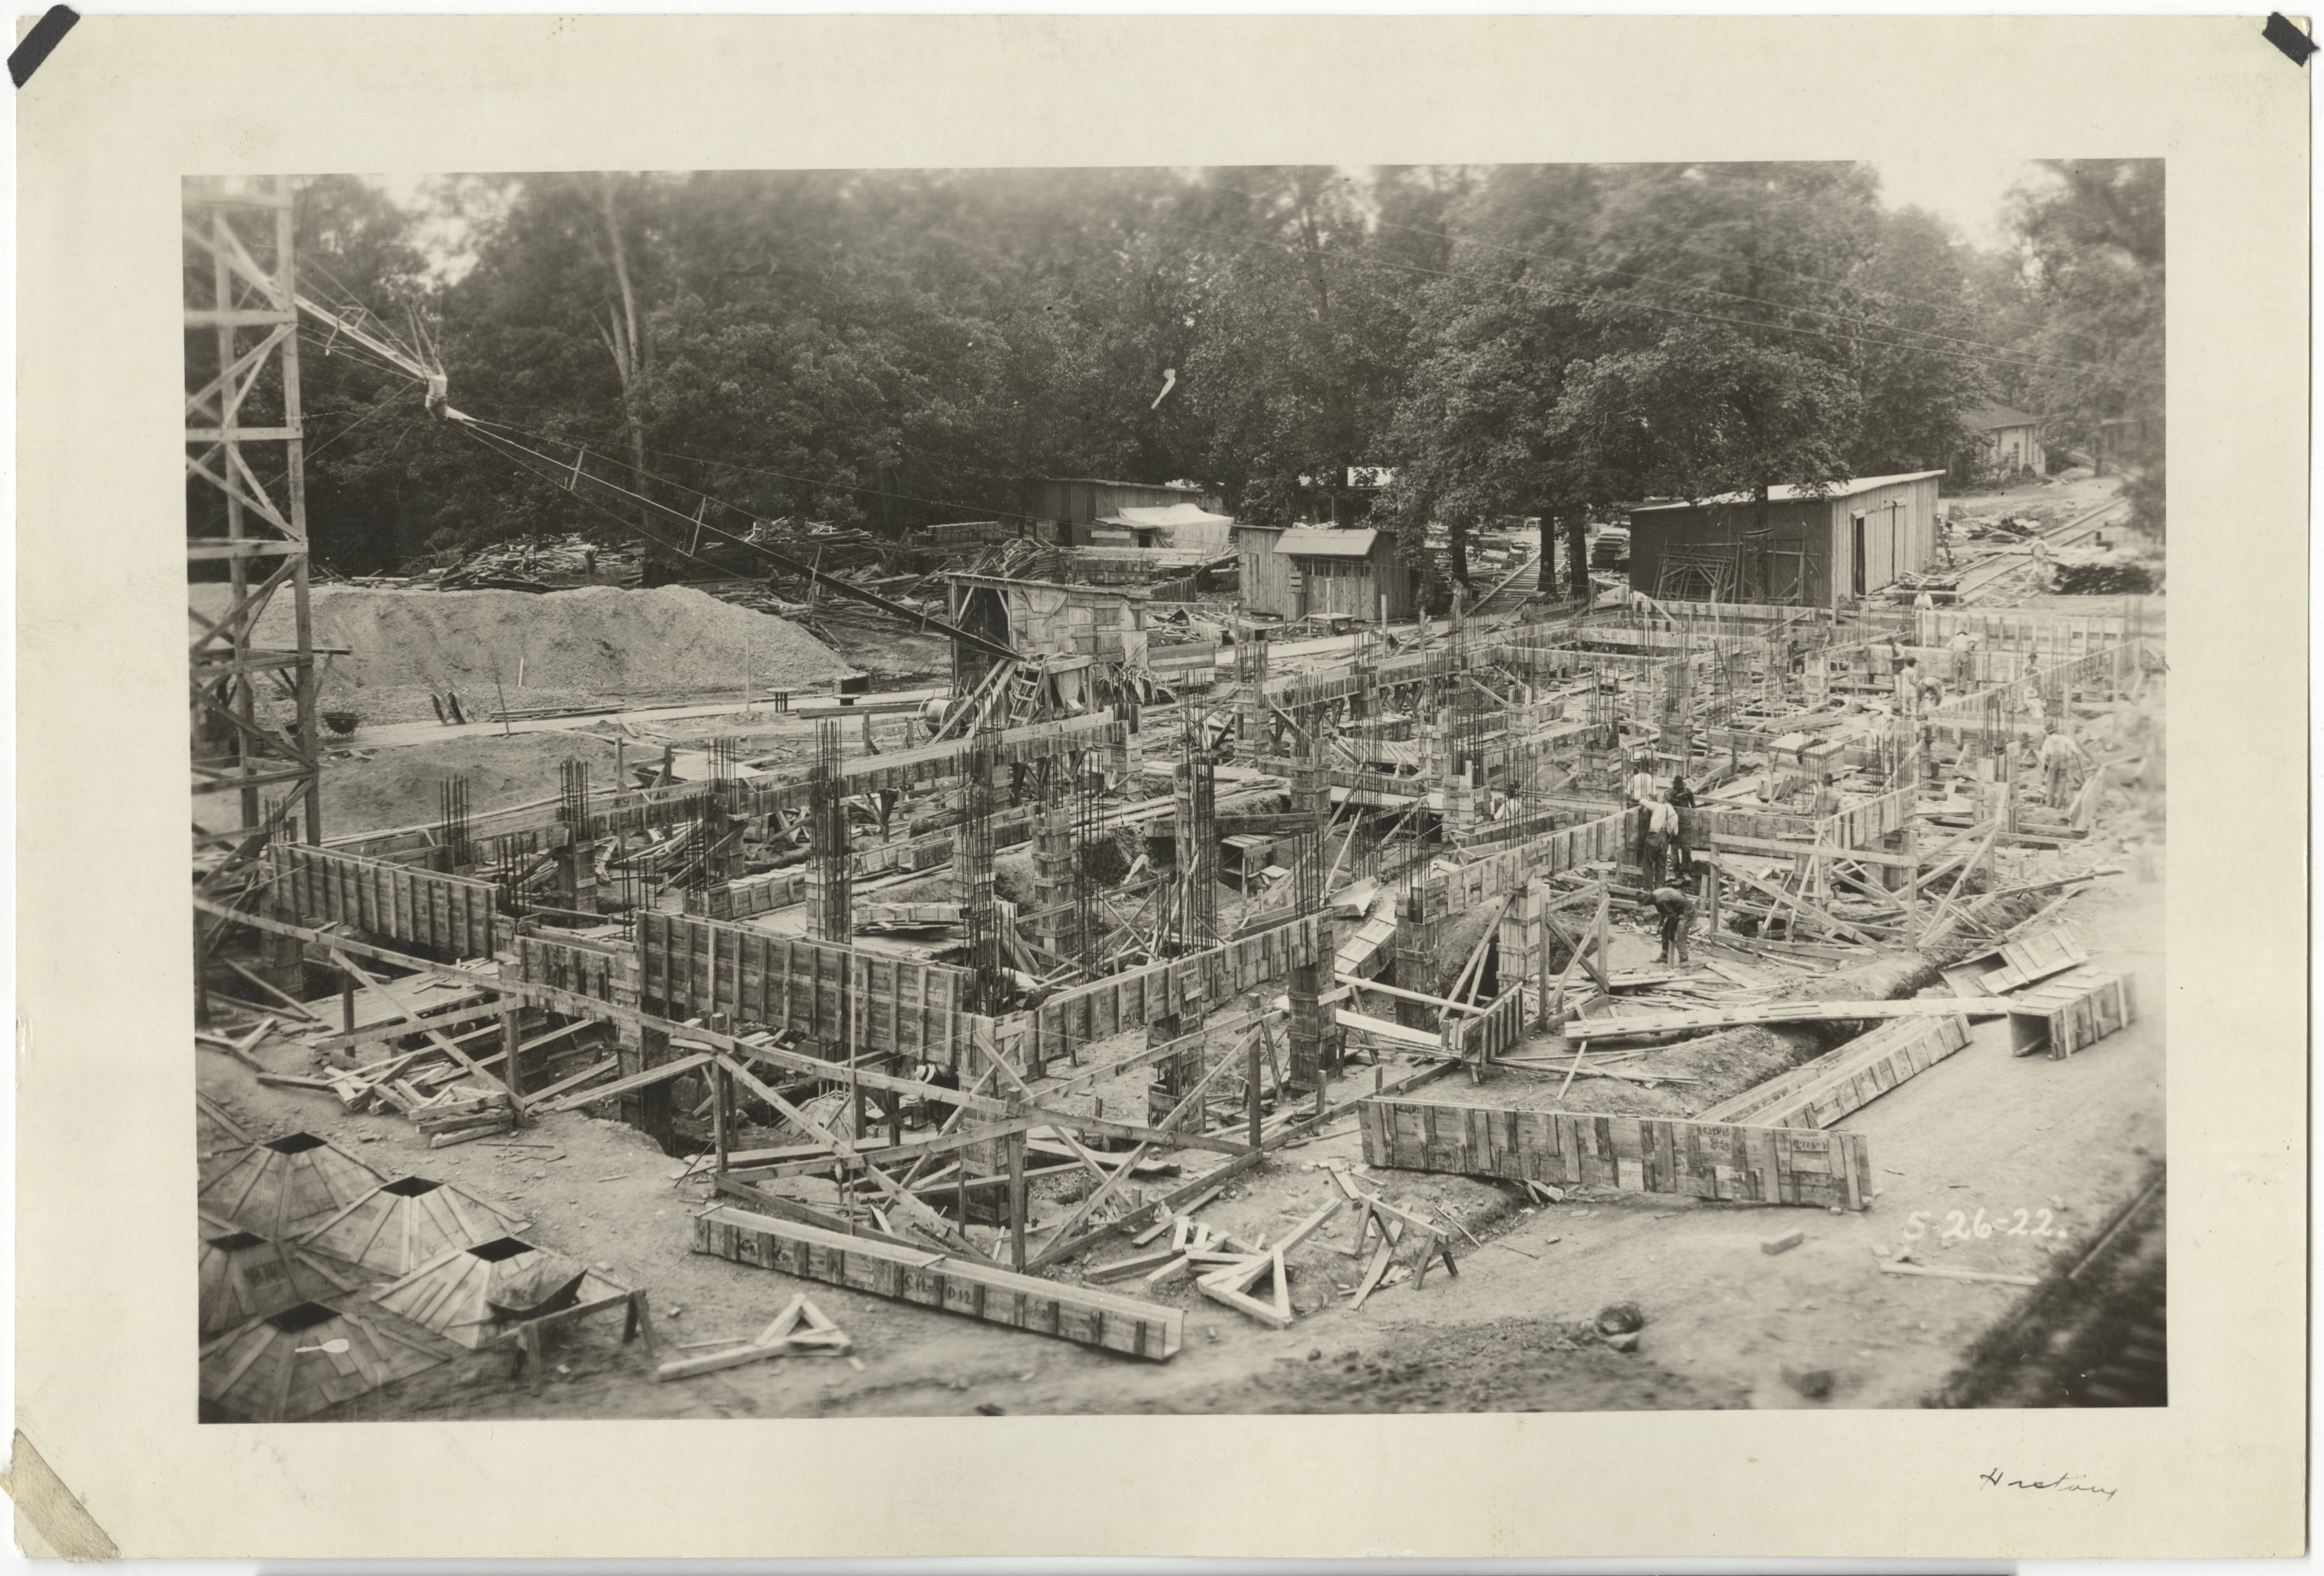 Saunders Hall under construction, 1922